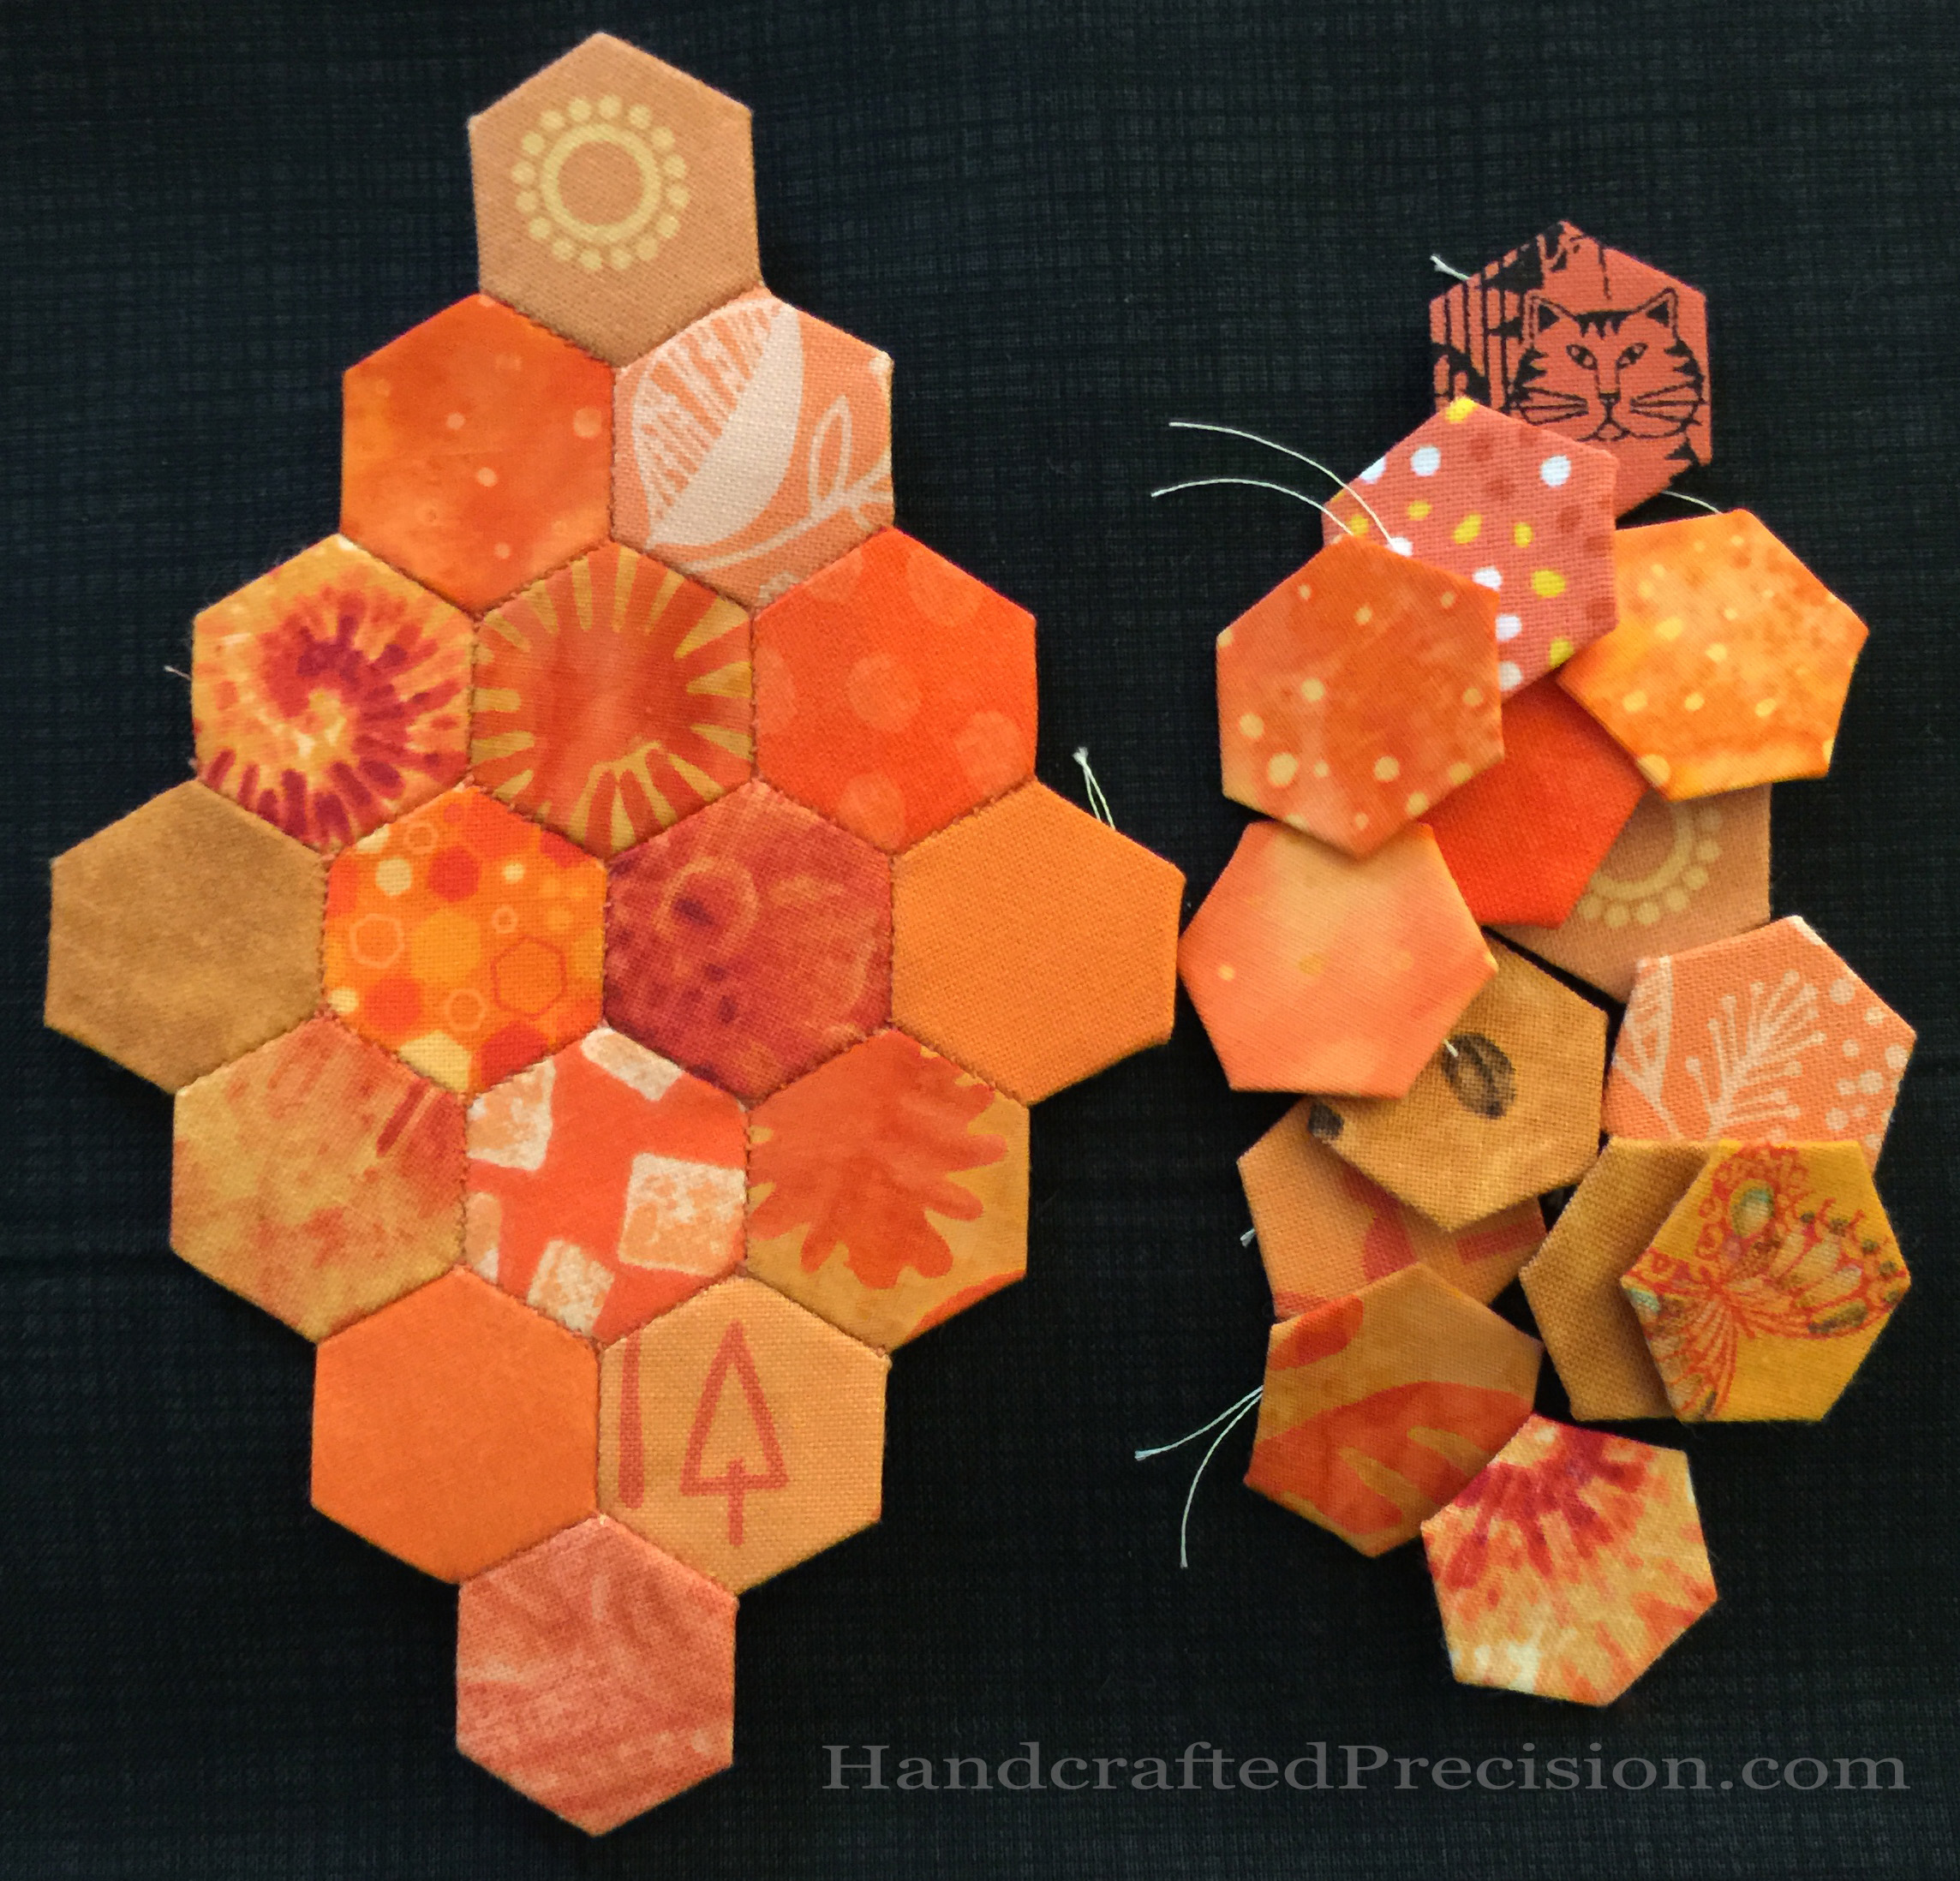 Orange Hexagon Diamond Front with Spares